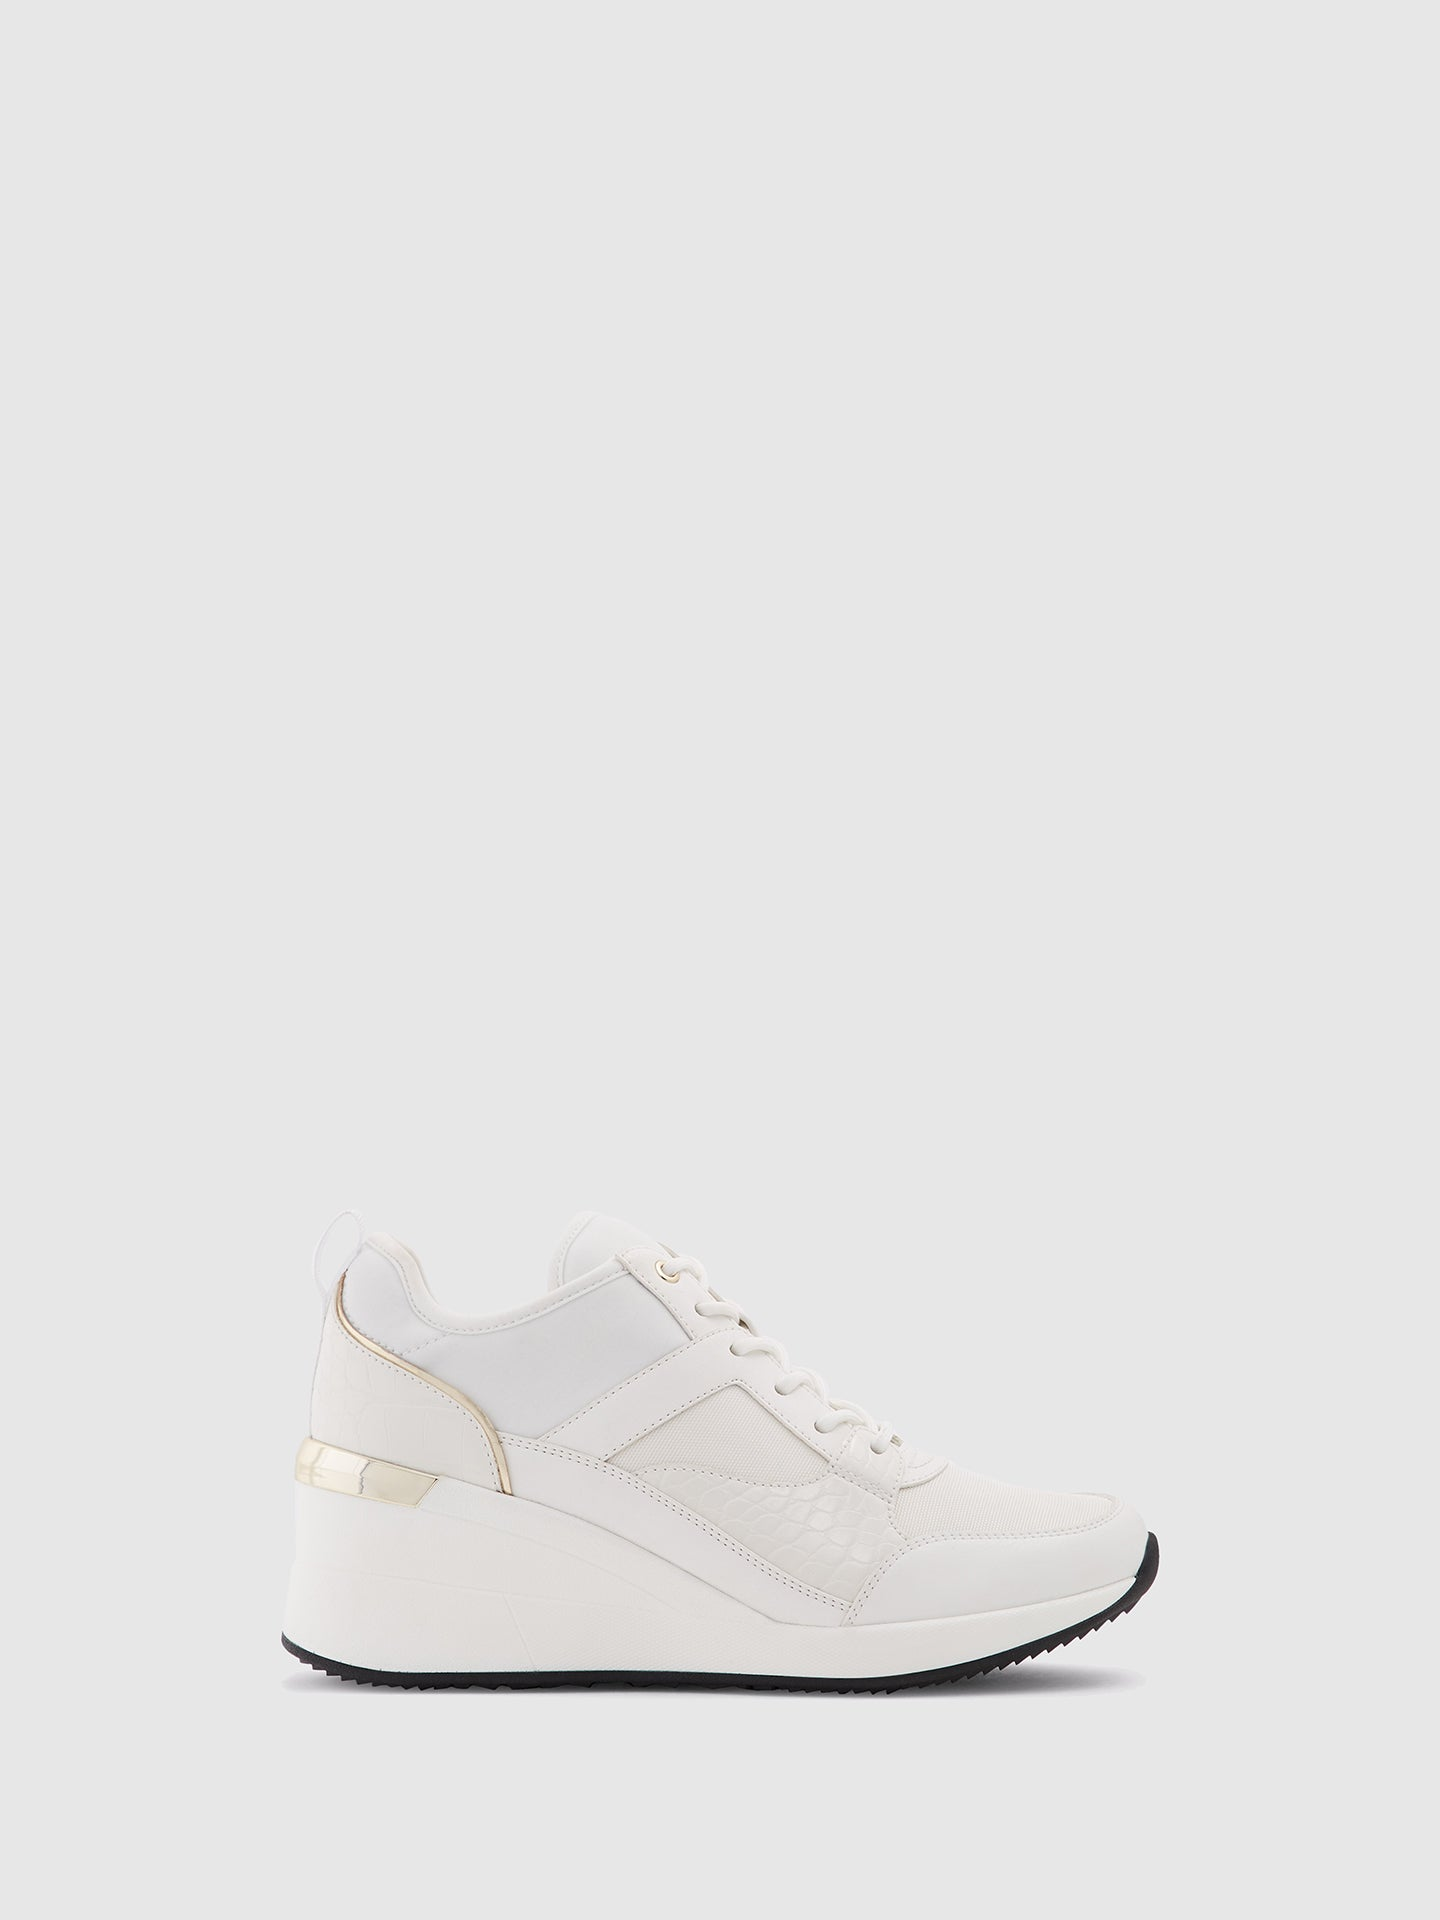 Aldo White Wedge Trainers